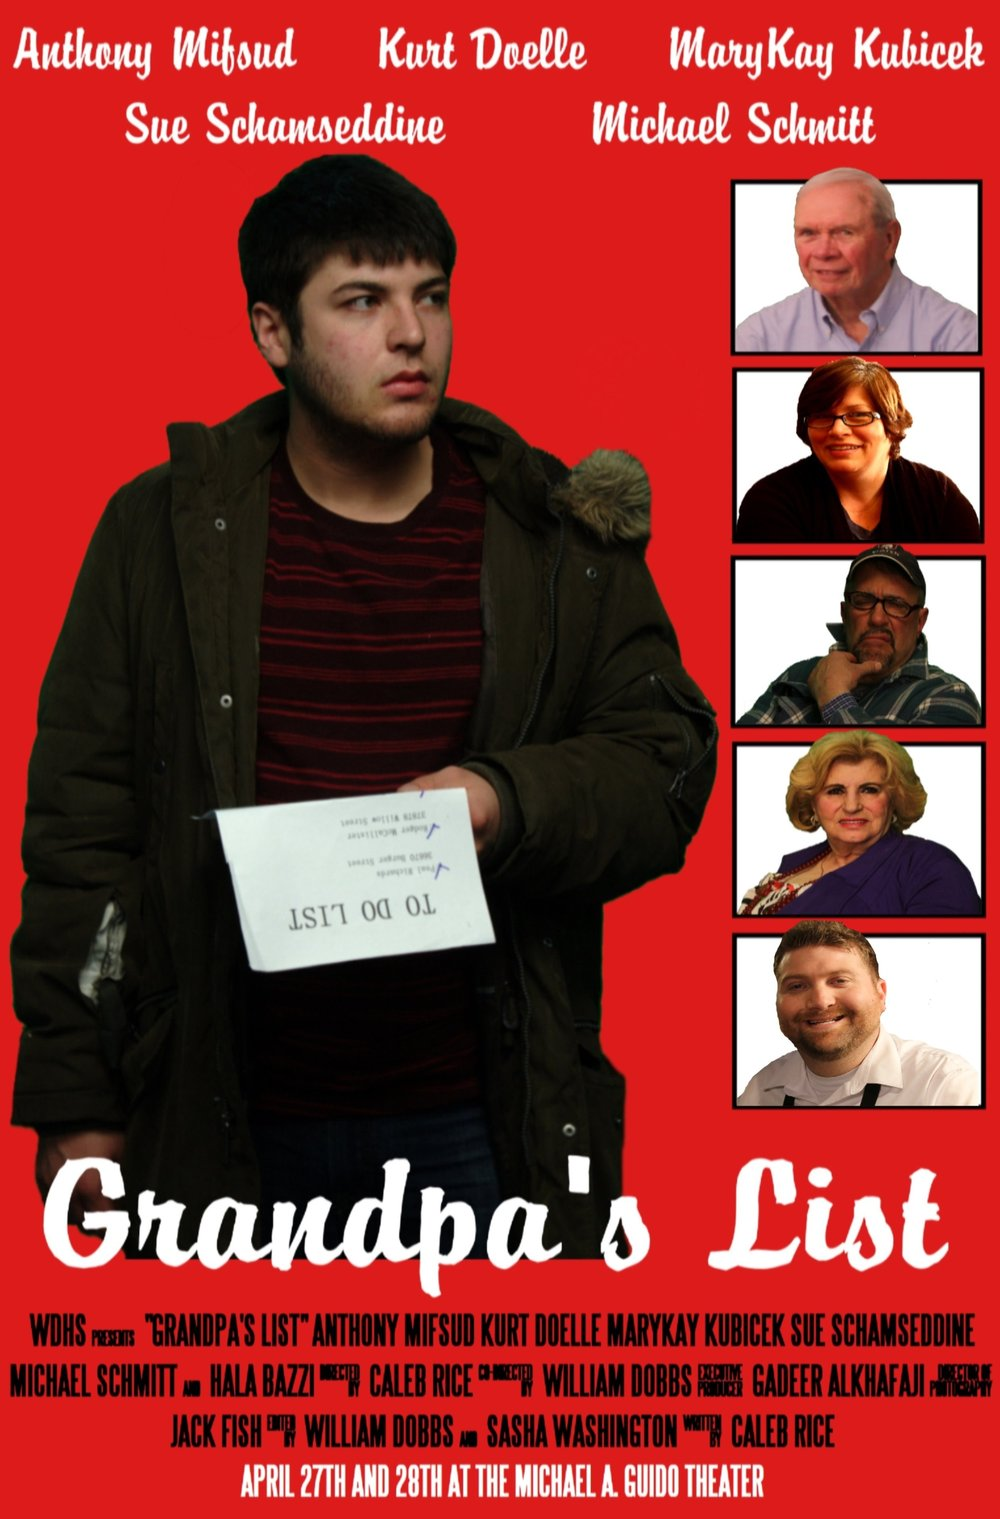 Grandpa's List - Johnny's grandfather just past away and while cleaning out his house, Johnny finds a list with only acts of kindness on it. Feeling as though he did't really know who his grandfather was, Johnny performs all the tasks on the list to feel a little more connected.http://www.imdb.com/title/tt6793970/?ref_=fn_al_tt_1Cast: Anthony Mifsud, Kurt Doelle, Sue Shamseddine, MaryKay Kubicek, Michael Schmitt, Hala Bazzi, Ronald Jones, Susan Dobbs, Troy OgleCrew: Caleb Rice - Director/ Writer, William Dobbs - Assistant Director/ Writer/ Camera, Gadeer Alkhafaji - Executive Producer, Elijha Jefferson - Producer/ Sound, Jack Fish - Director of Photography/ Camera, Sema Alsaid - Camera, Angel Goethals - Camera/ Lighting, Richard Cialone - Lighting, Ali Bazzi - Sound, Davina Loving - Lighting, Kurt Doelle - Sound, Madison Murdoch - Preproduction Producer, Luke Levangie - LightingSpecial Thanks: Cherry Hill Presbyterian Church, Westborn Market, The Kubicek Family, The Alsaid Family, Carl Bryer, La Fork, Ronald and Fay Jones, The Goethals Family